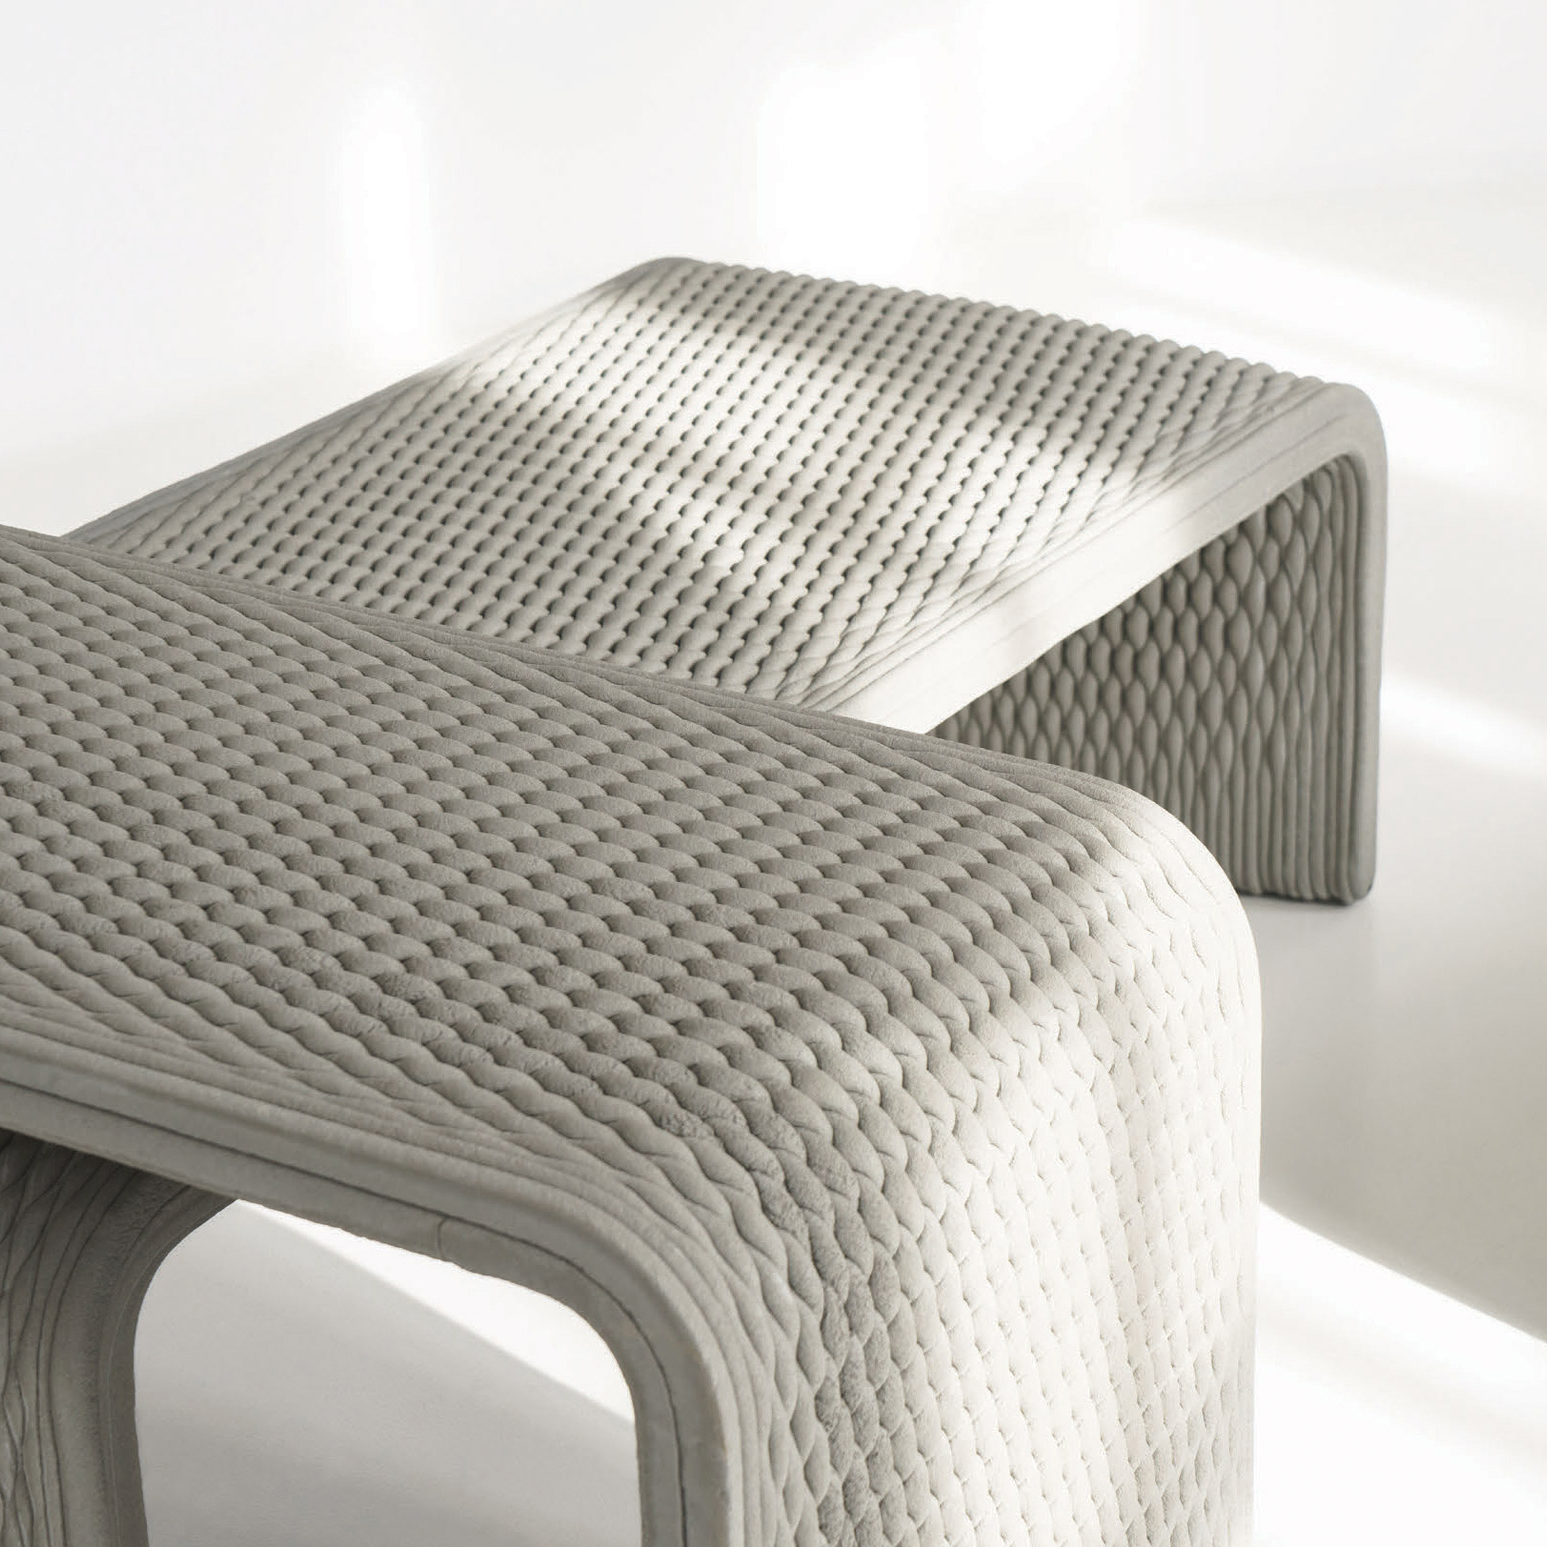 Admirable Collection Of Benches Woven In 3D Printed Concrete Ibusinesslaw Wood Chair Design Ideas Ibusinesslaworg